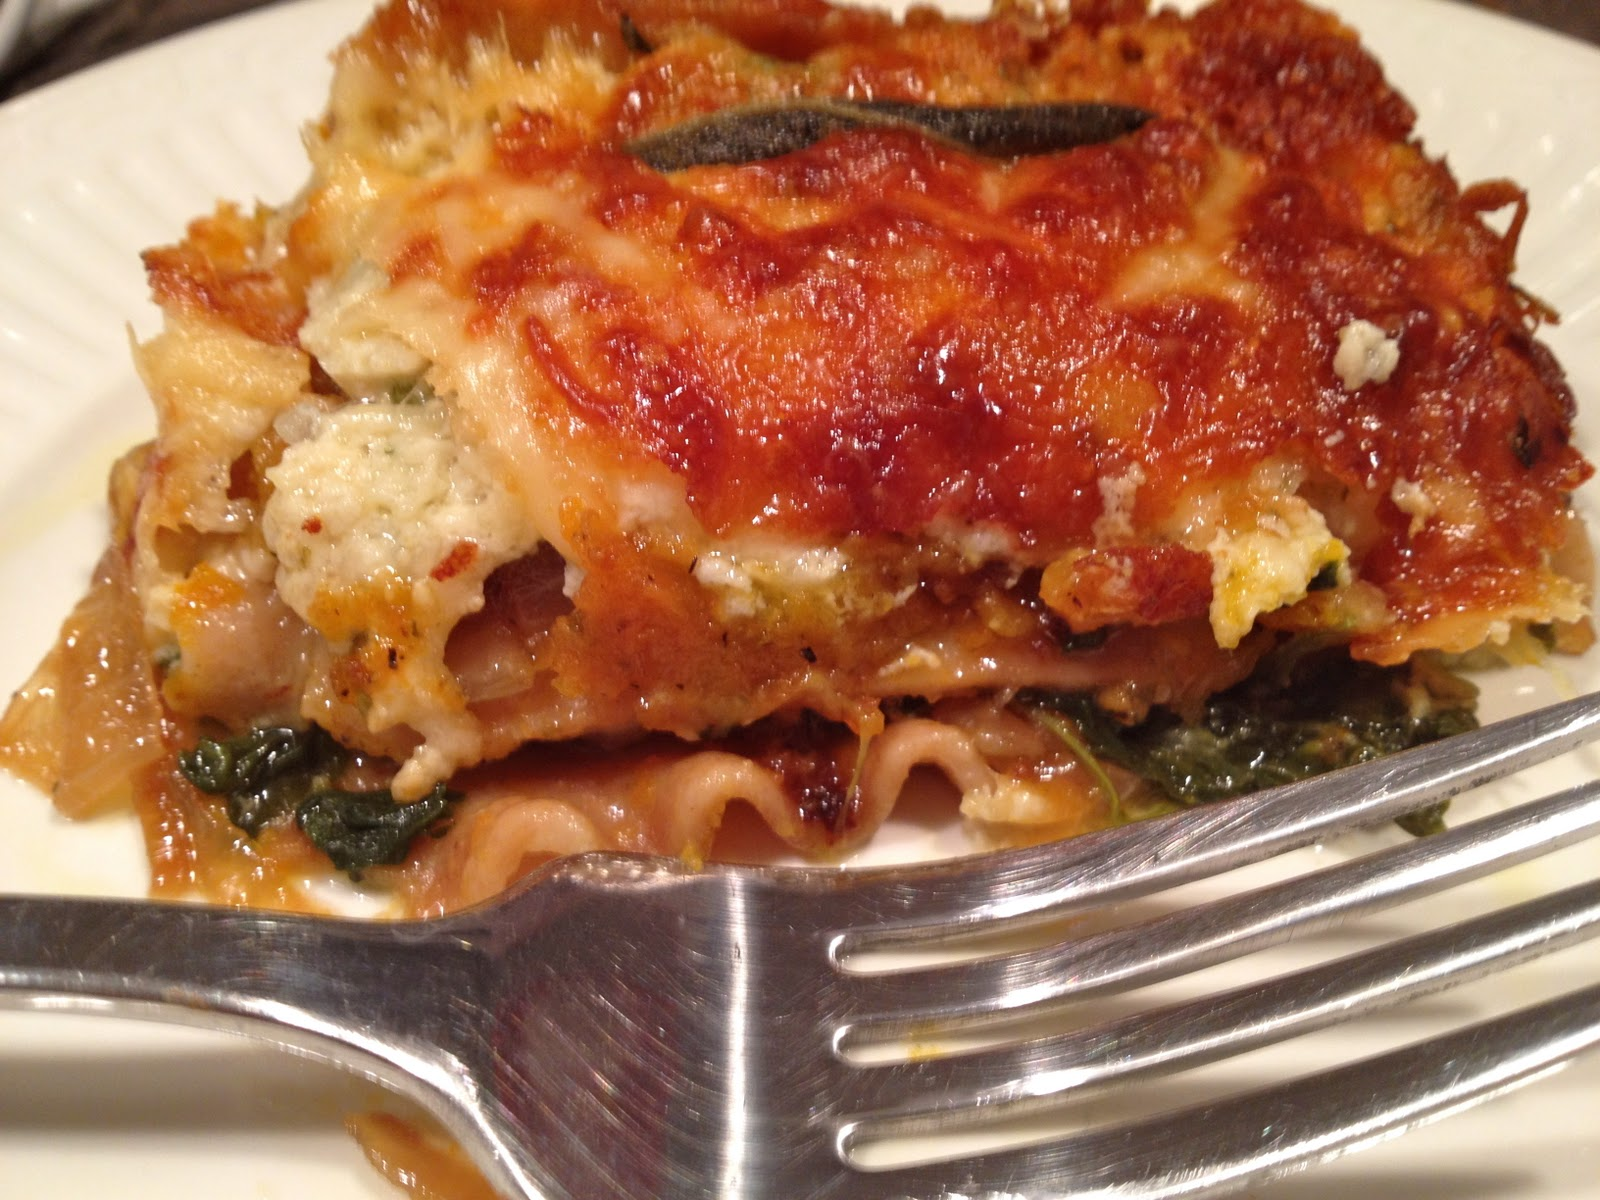 Call Me Mrs. Rapp: Roasted Butternut Squash & Sweet Potato Lasagna